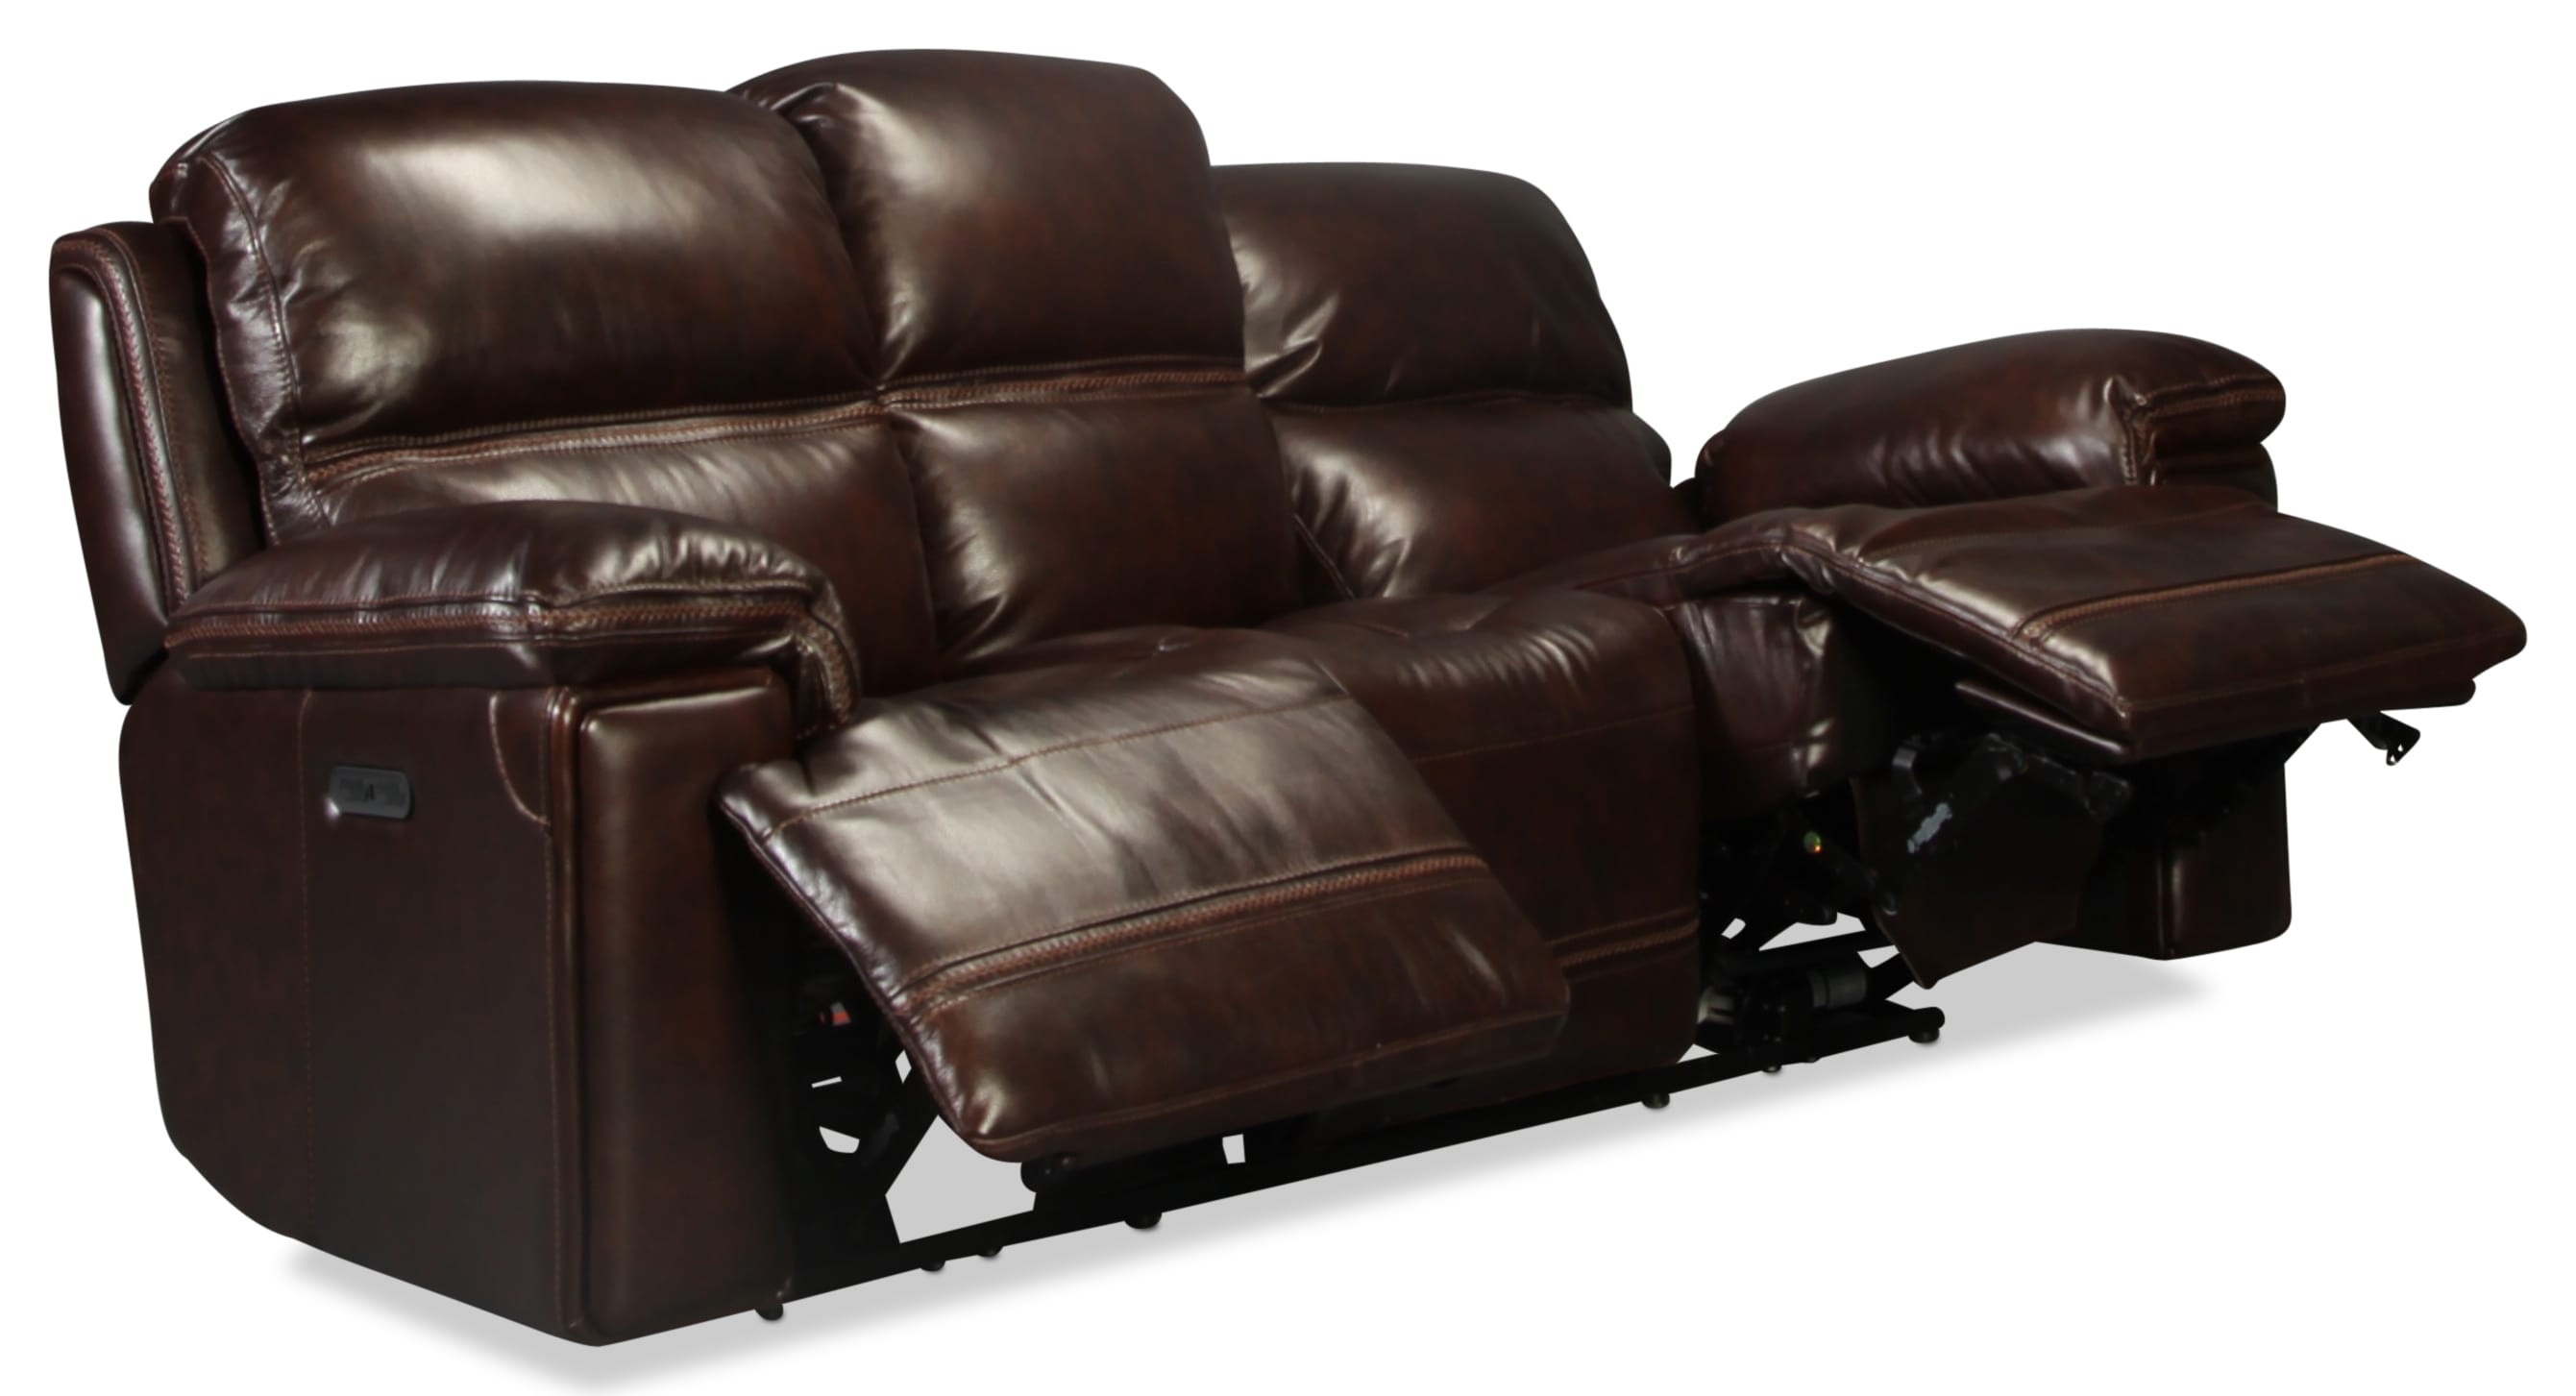 Diego sofa dark brown levin furniture for Levin furniture sectional sofa